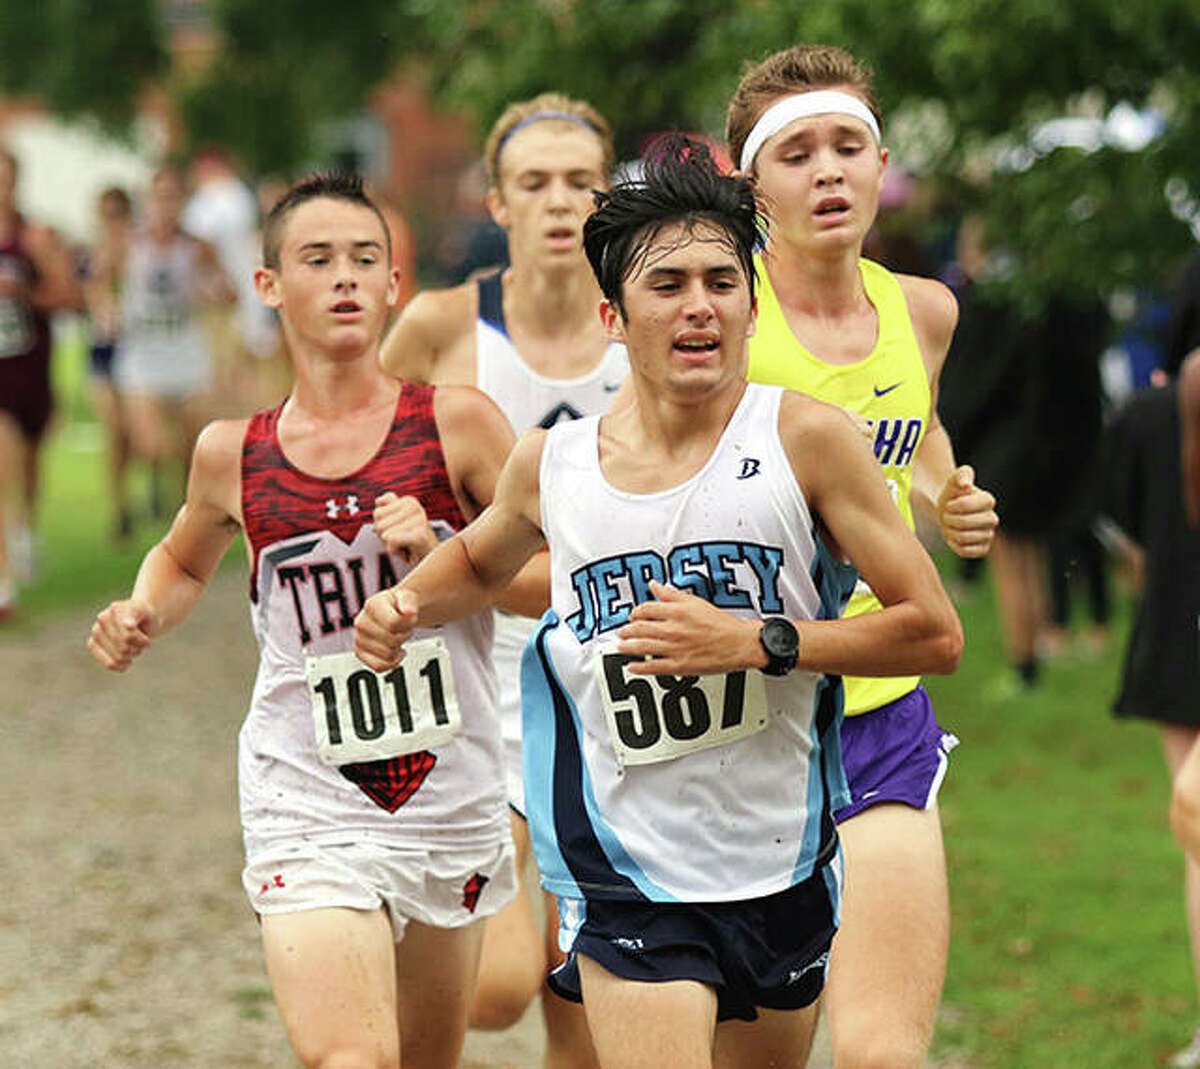 Jersey senior Cole Martinez (front) leads Triad sophomore Andrew Pace (1011) and Eureka senior Jake Brueggemann in the final 400 meters at Saturday morning's Granite City Invite at Wilson Park. Martinez ran 16th in the race, with Pace in 14th and Brueggemann in 17th.